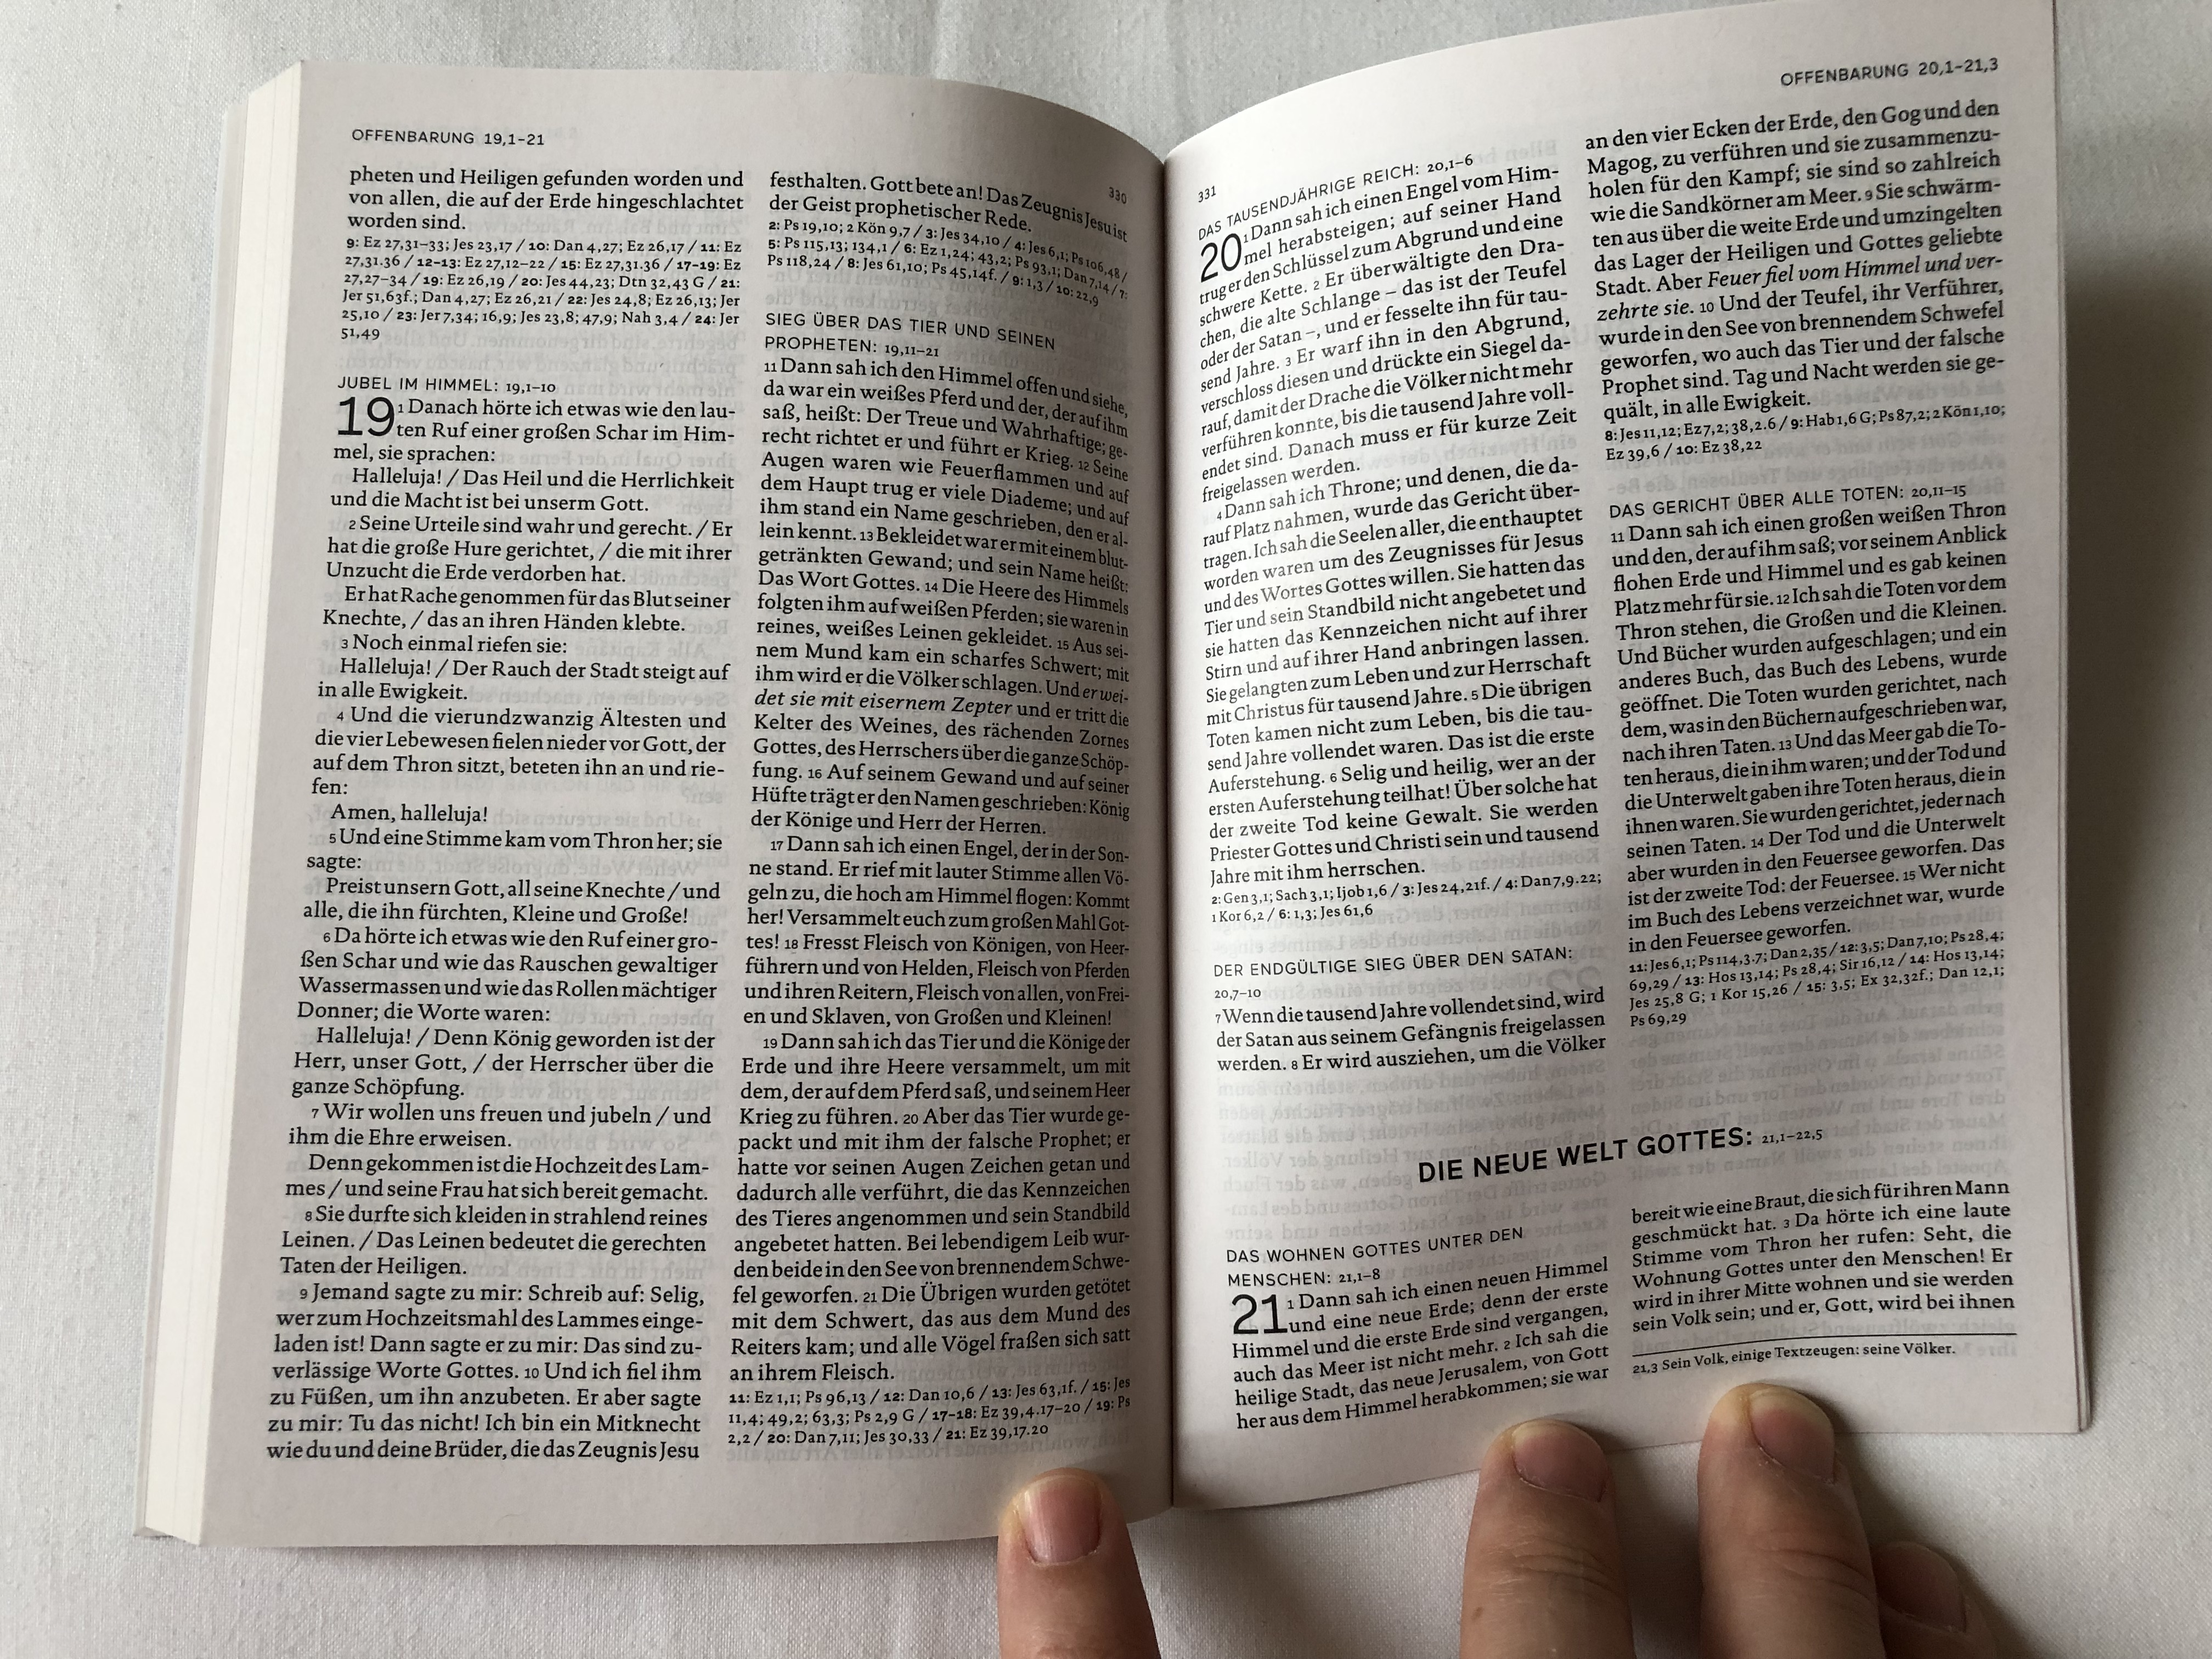 das-neue-testament-einheits-bersetzung-2.auflage-the-new-testament-in-german-unitary-translation-2nd-edition-book-introductions-references-notes-and-maps-paperback-2018-kbw-9-.jpg